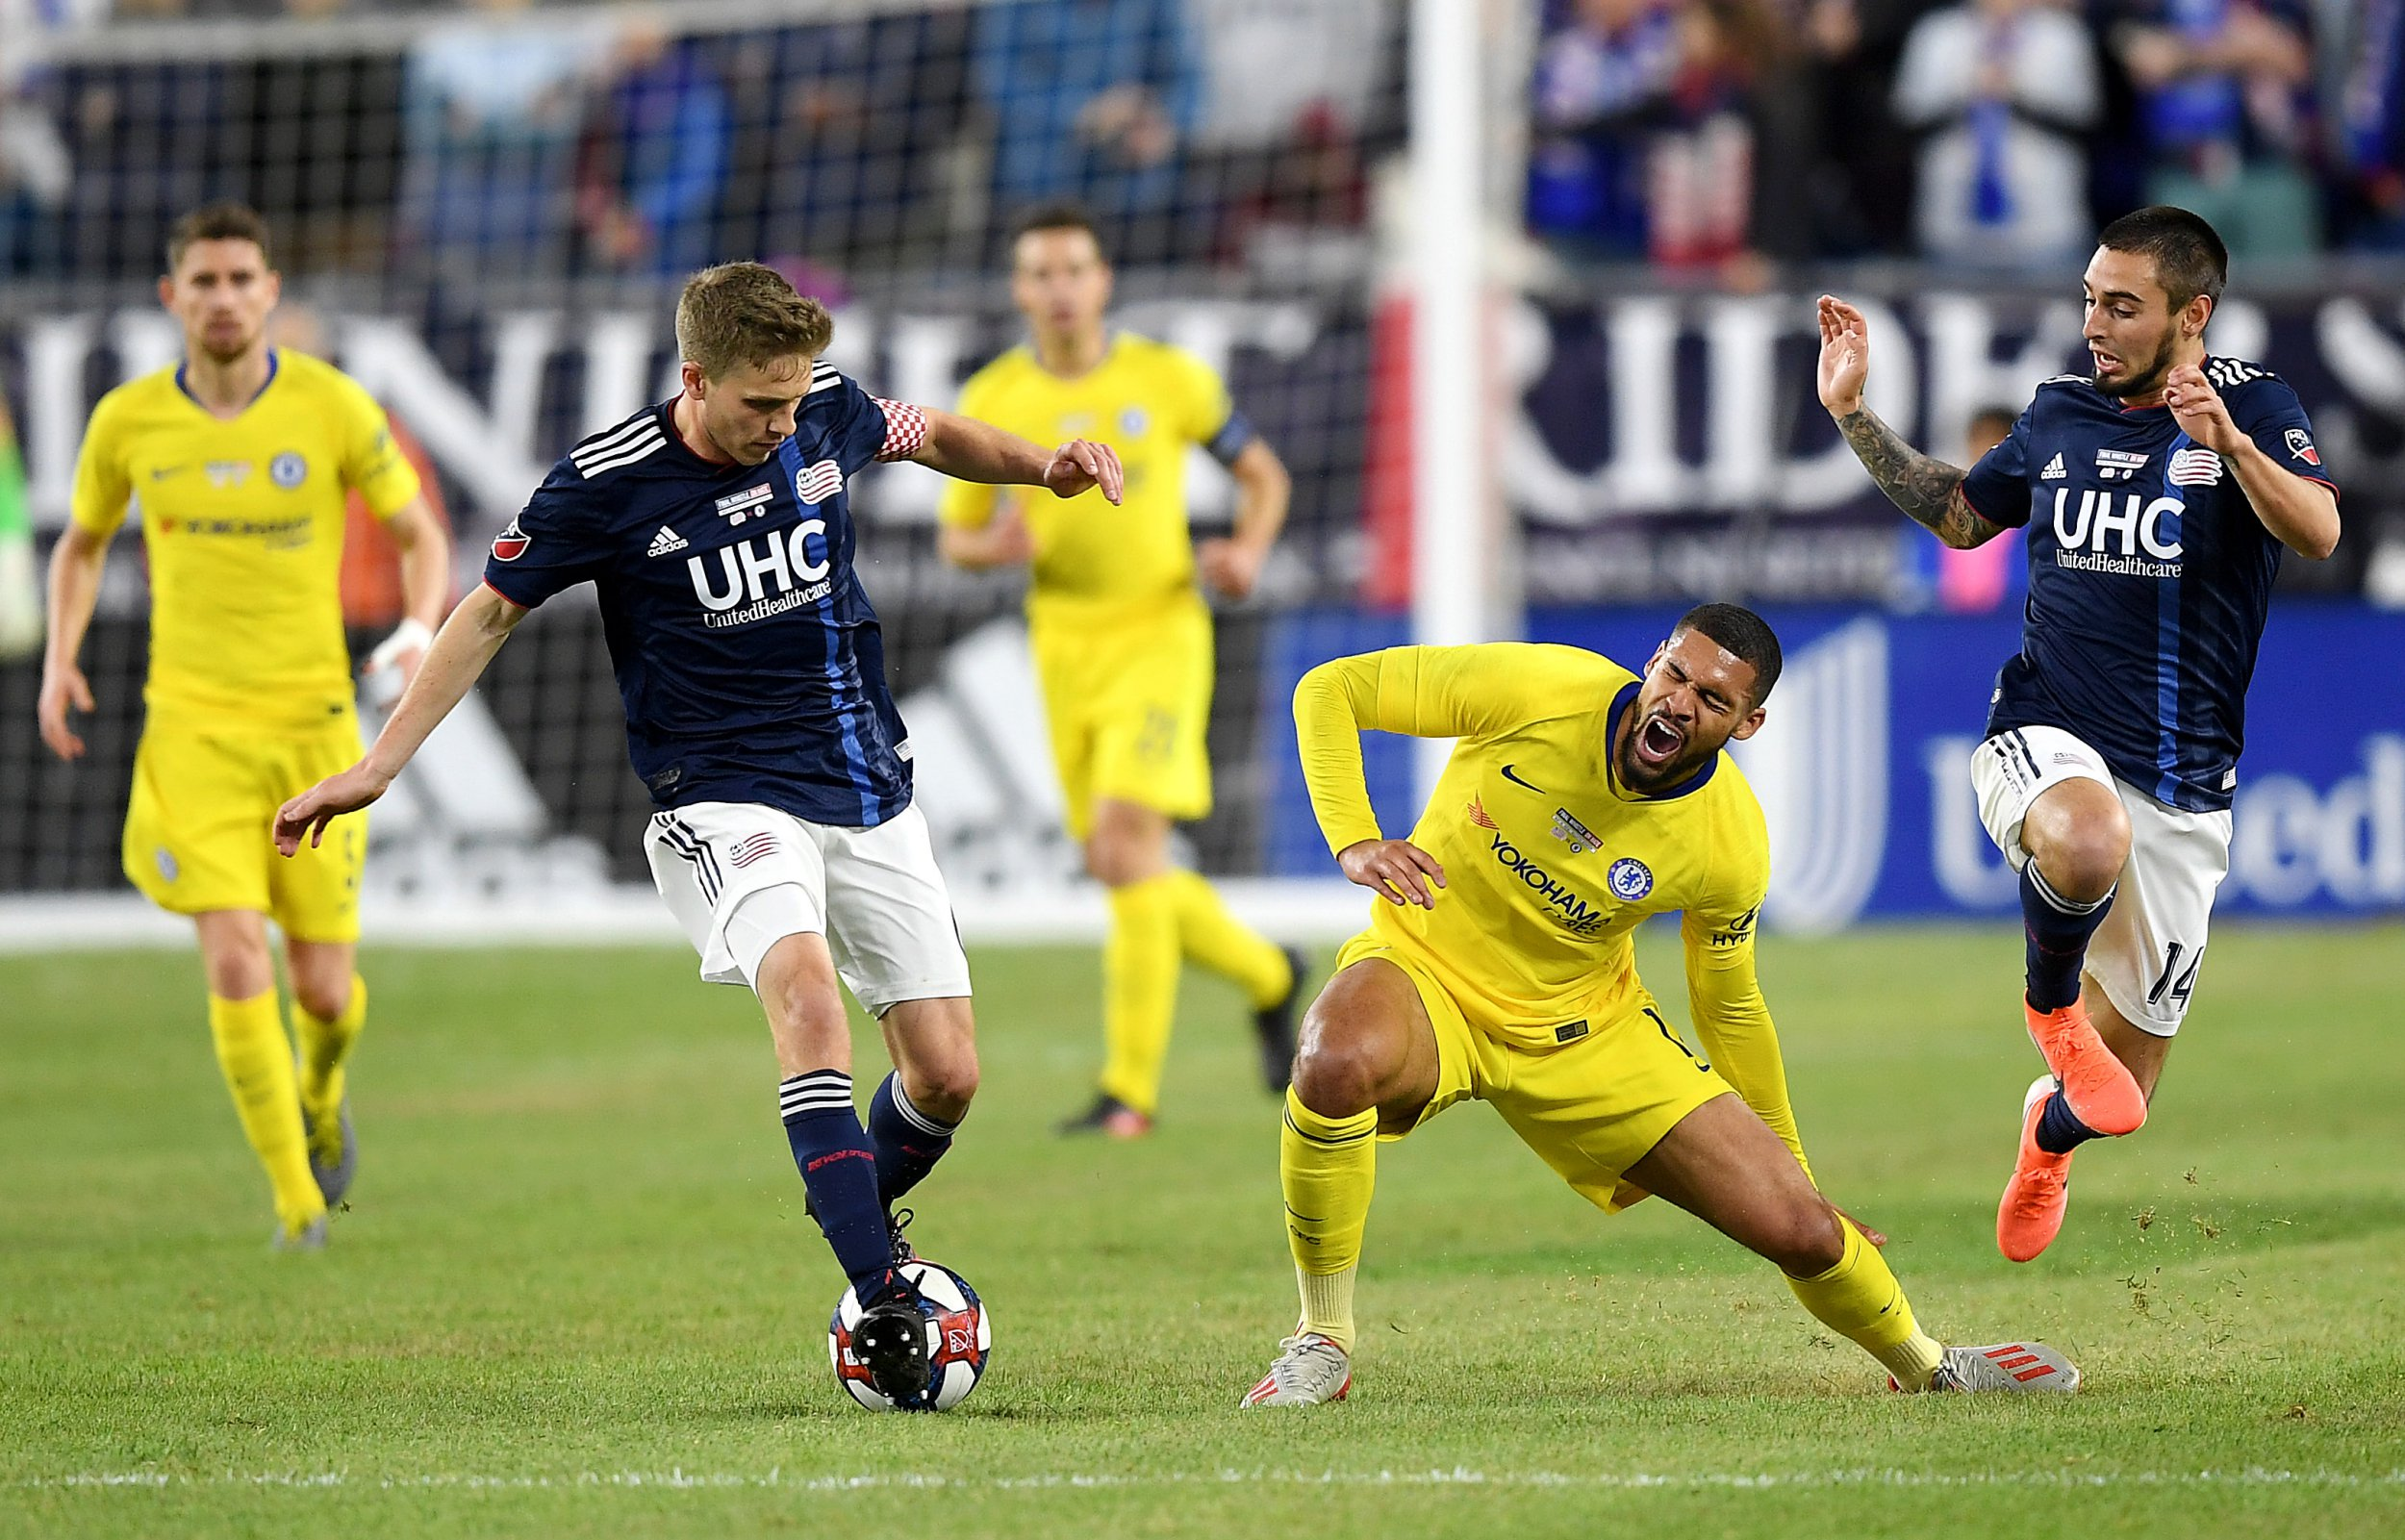 FOXBOROUGH, MASSACHUSETTS - MAY 15: Ruben Loftus-Cheek of Chelsea is challenged by Diego Fagundez of New England Revolution (R) during the Friendly Match match between New England Revolution and Chelsea at Gillette Stadium on May 15, 2019 in Foxborough, Massachusetts. (Photo by Darren Walsh/Chelsea FC via Getty Images)